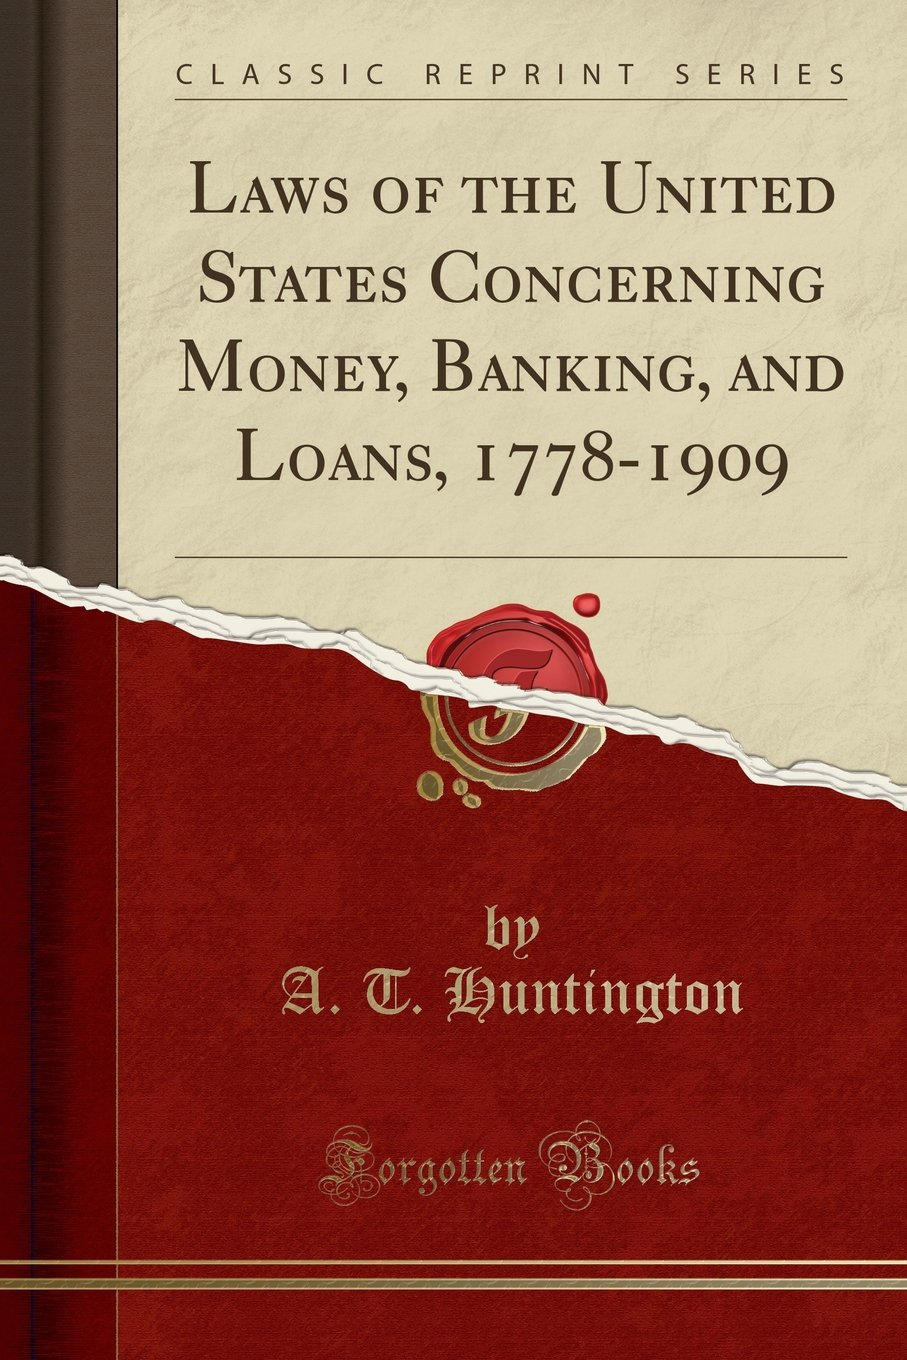 Laws of the United States Concerning Money, Banking, and Loans, 1778-1909 (Classic Reprint) pdf epub